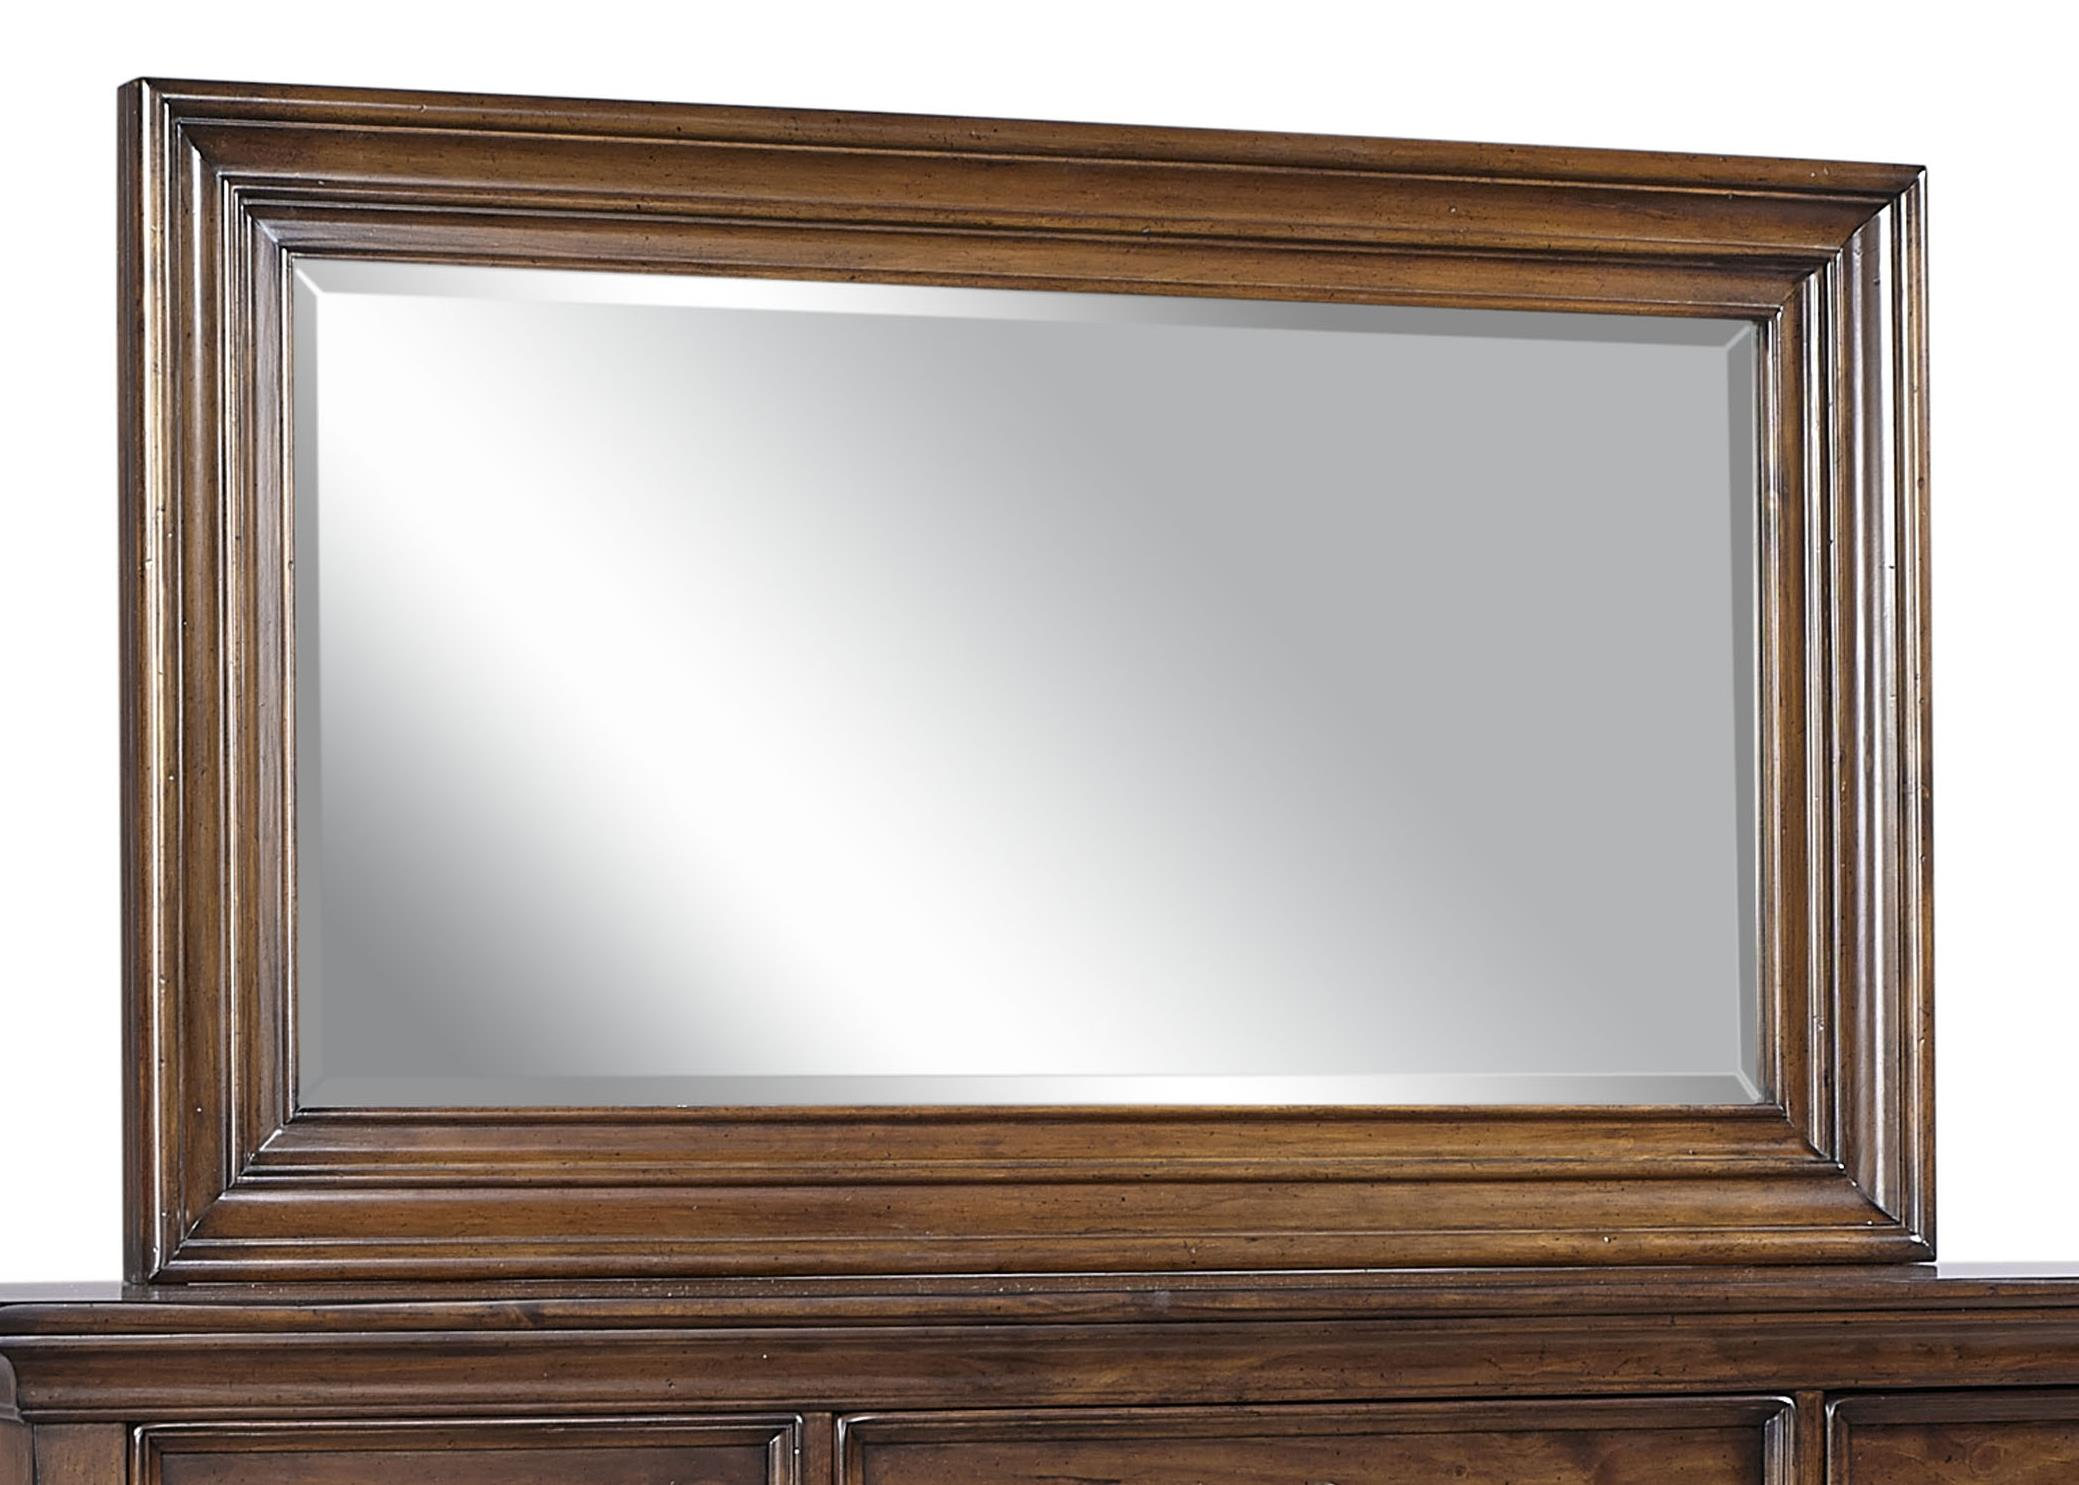 Aspenhome Camden Master Chest Mirror  - Item Number: I57-465